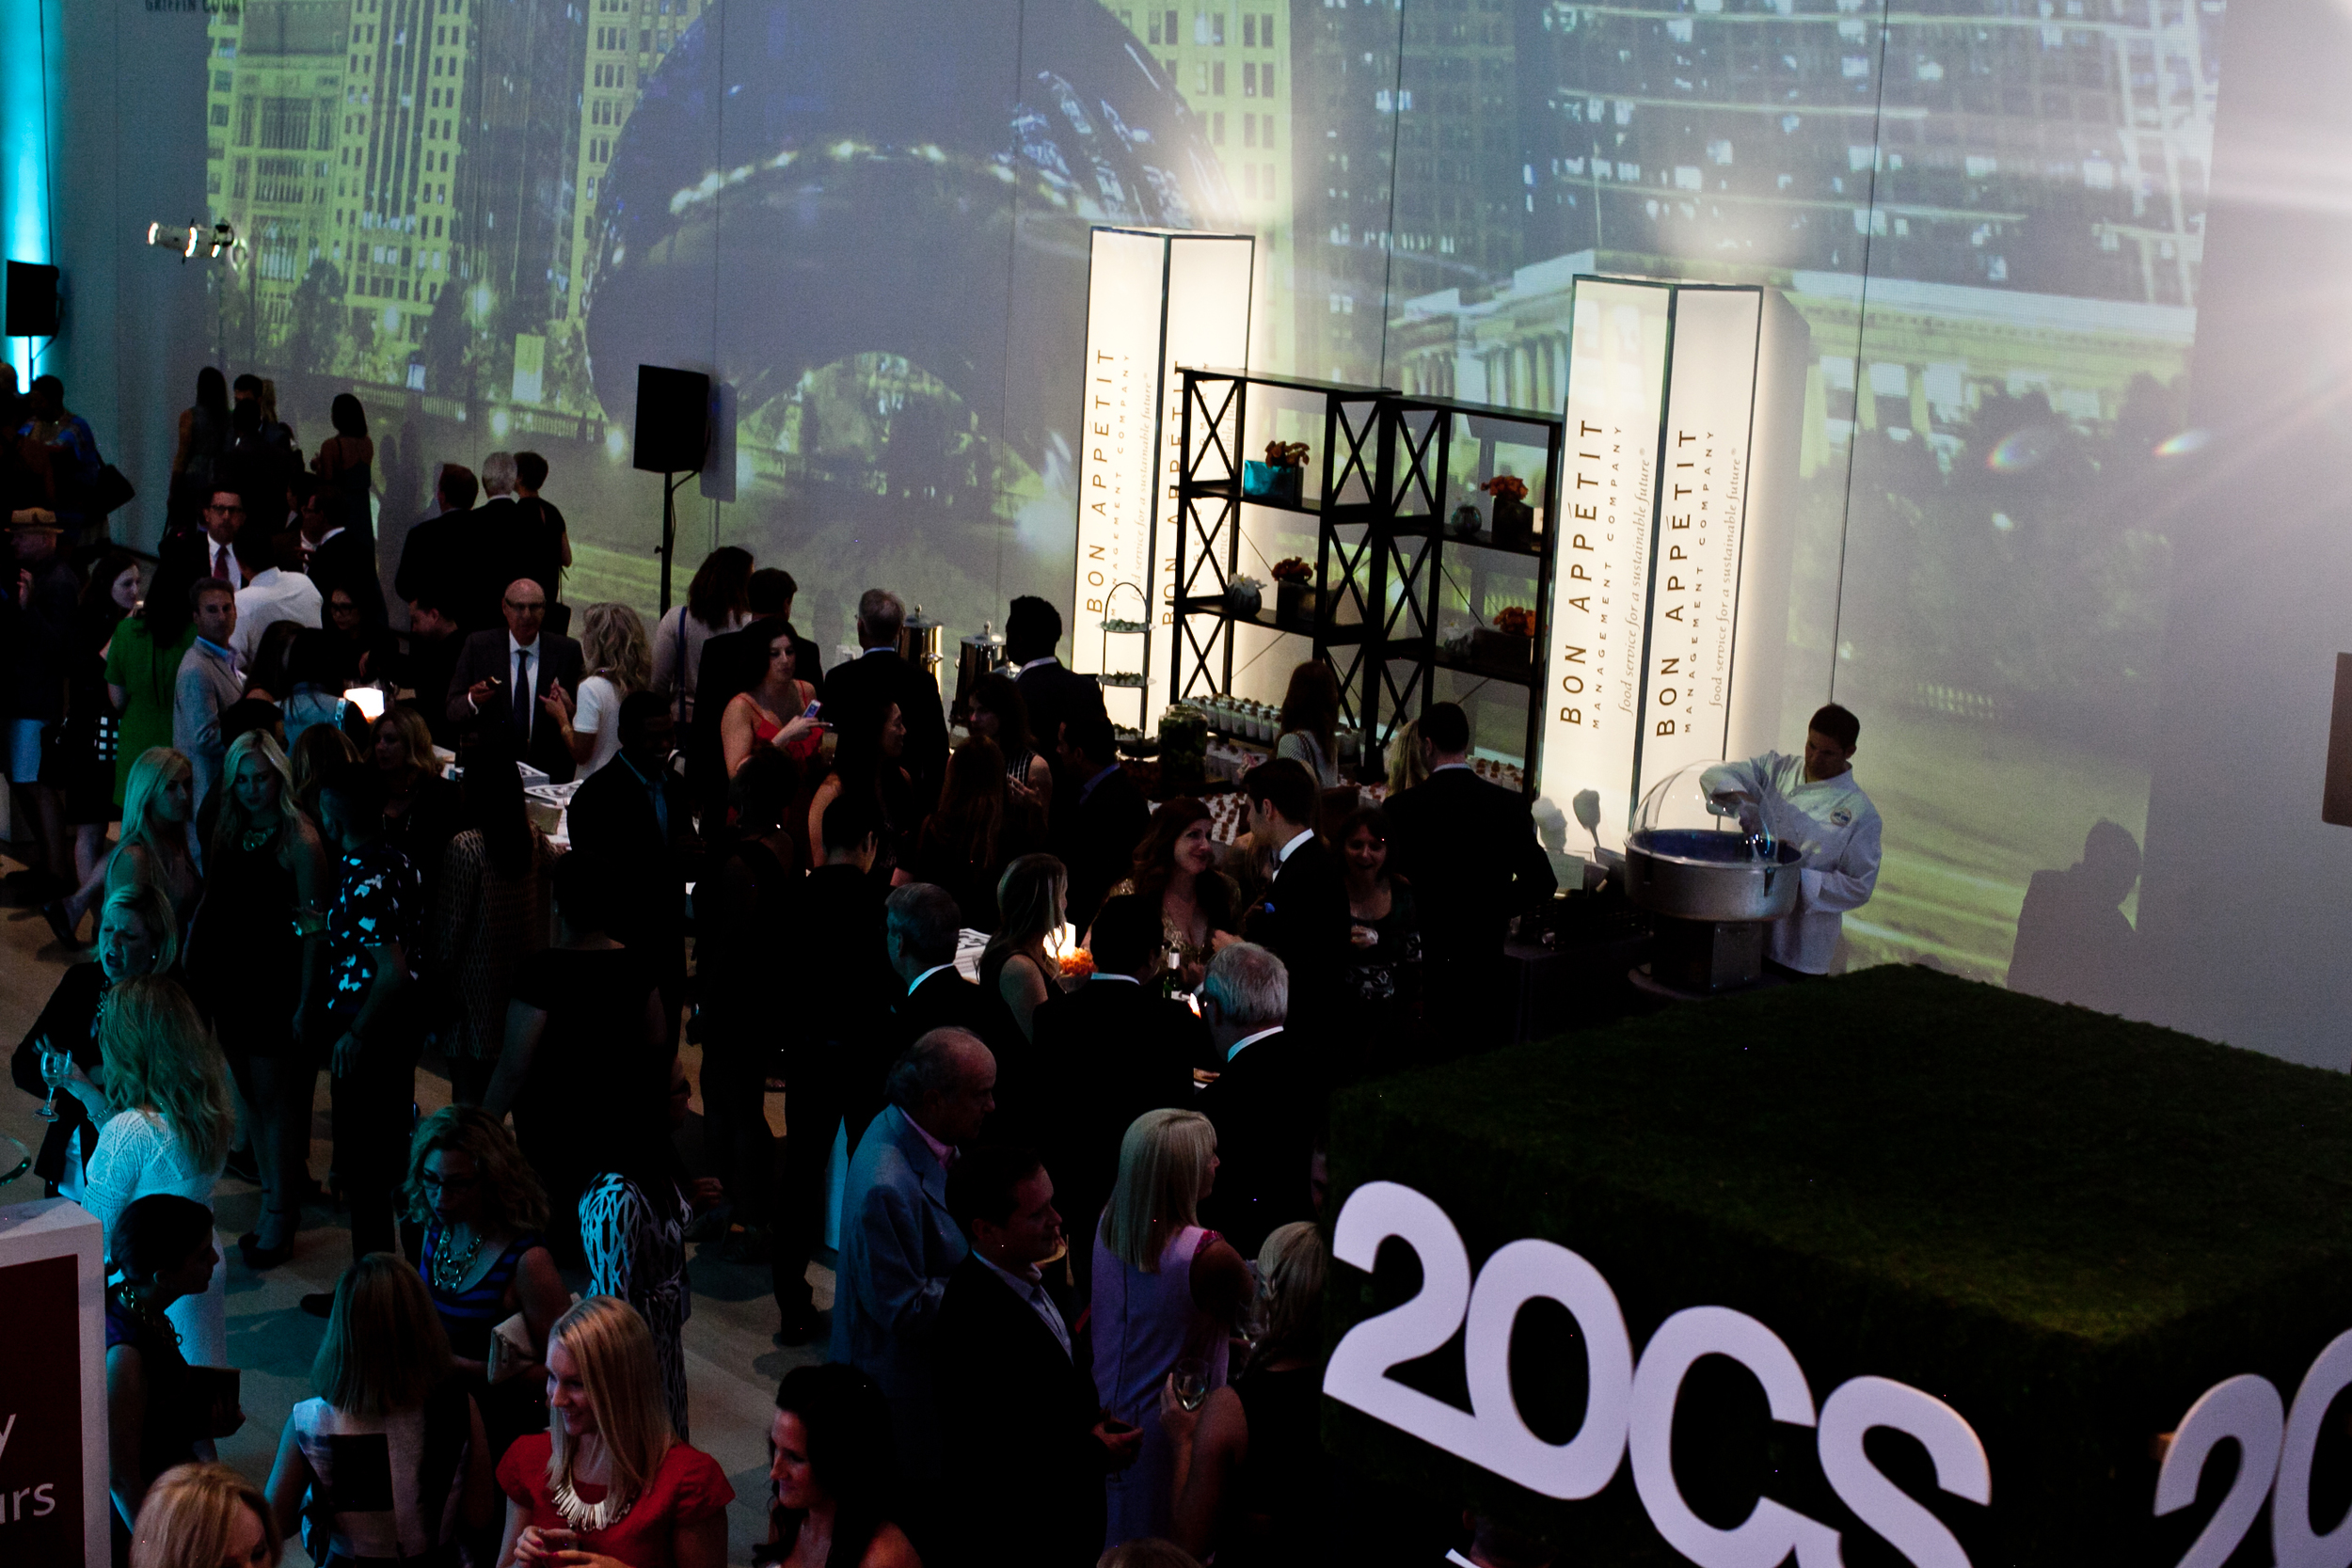 CS 20th Anniversy at the Art Institute ambient-0003.jpg